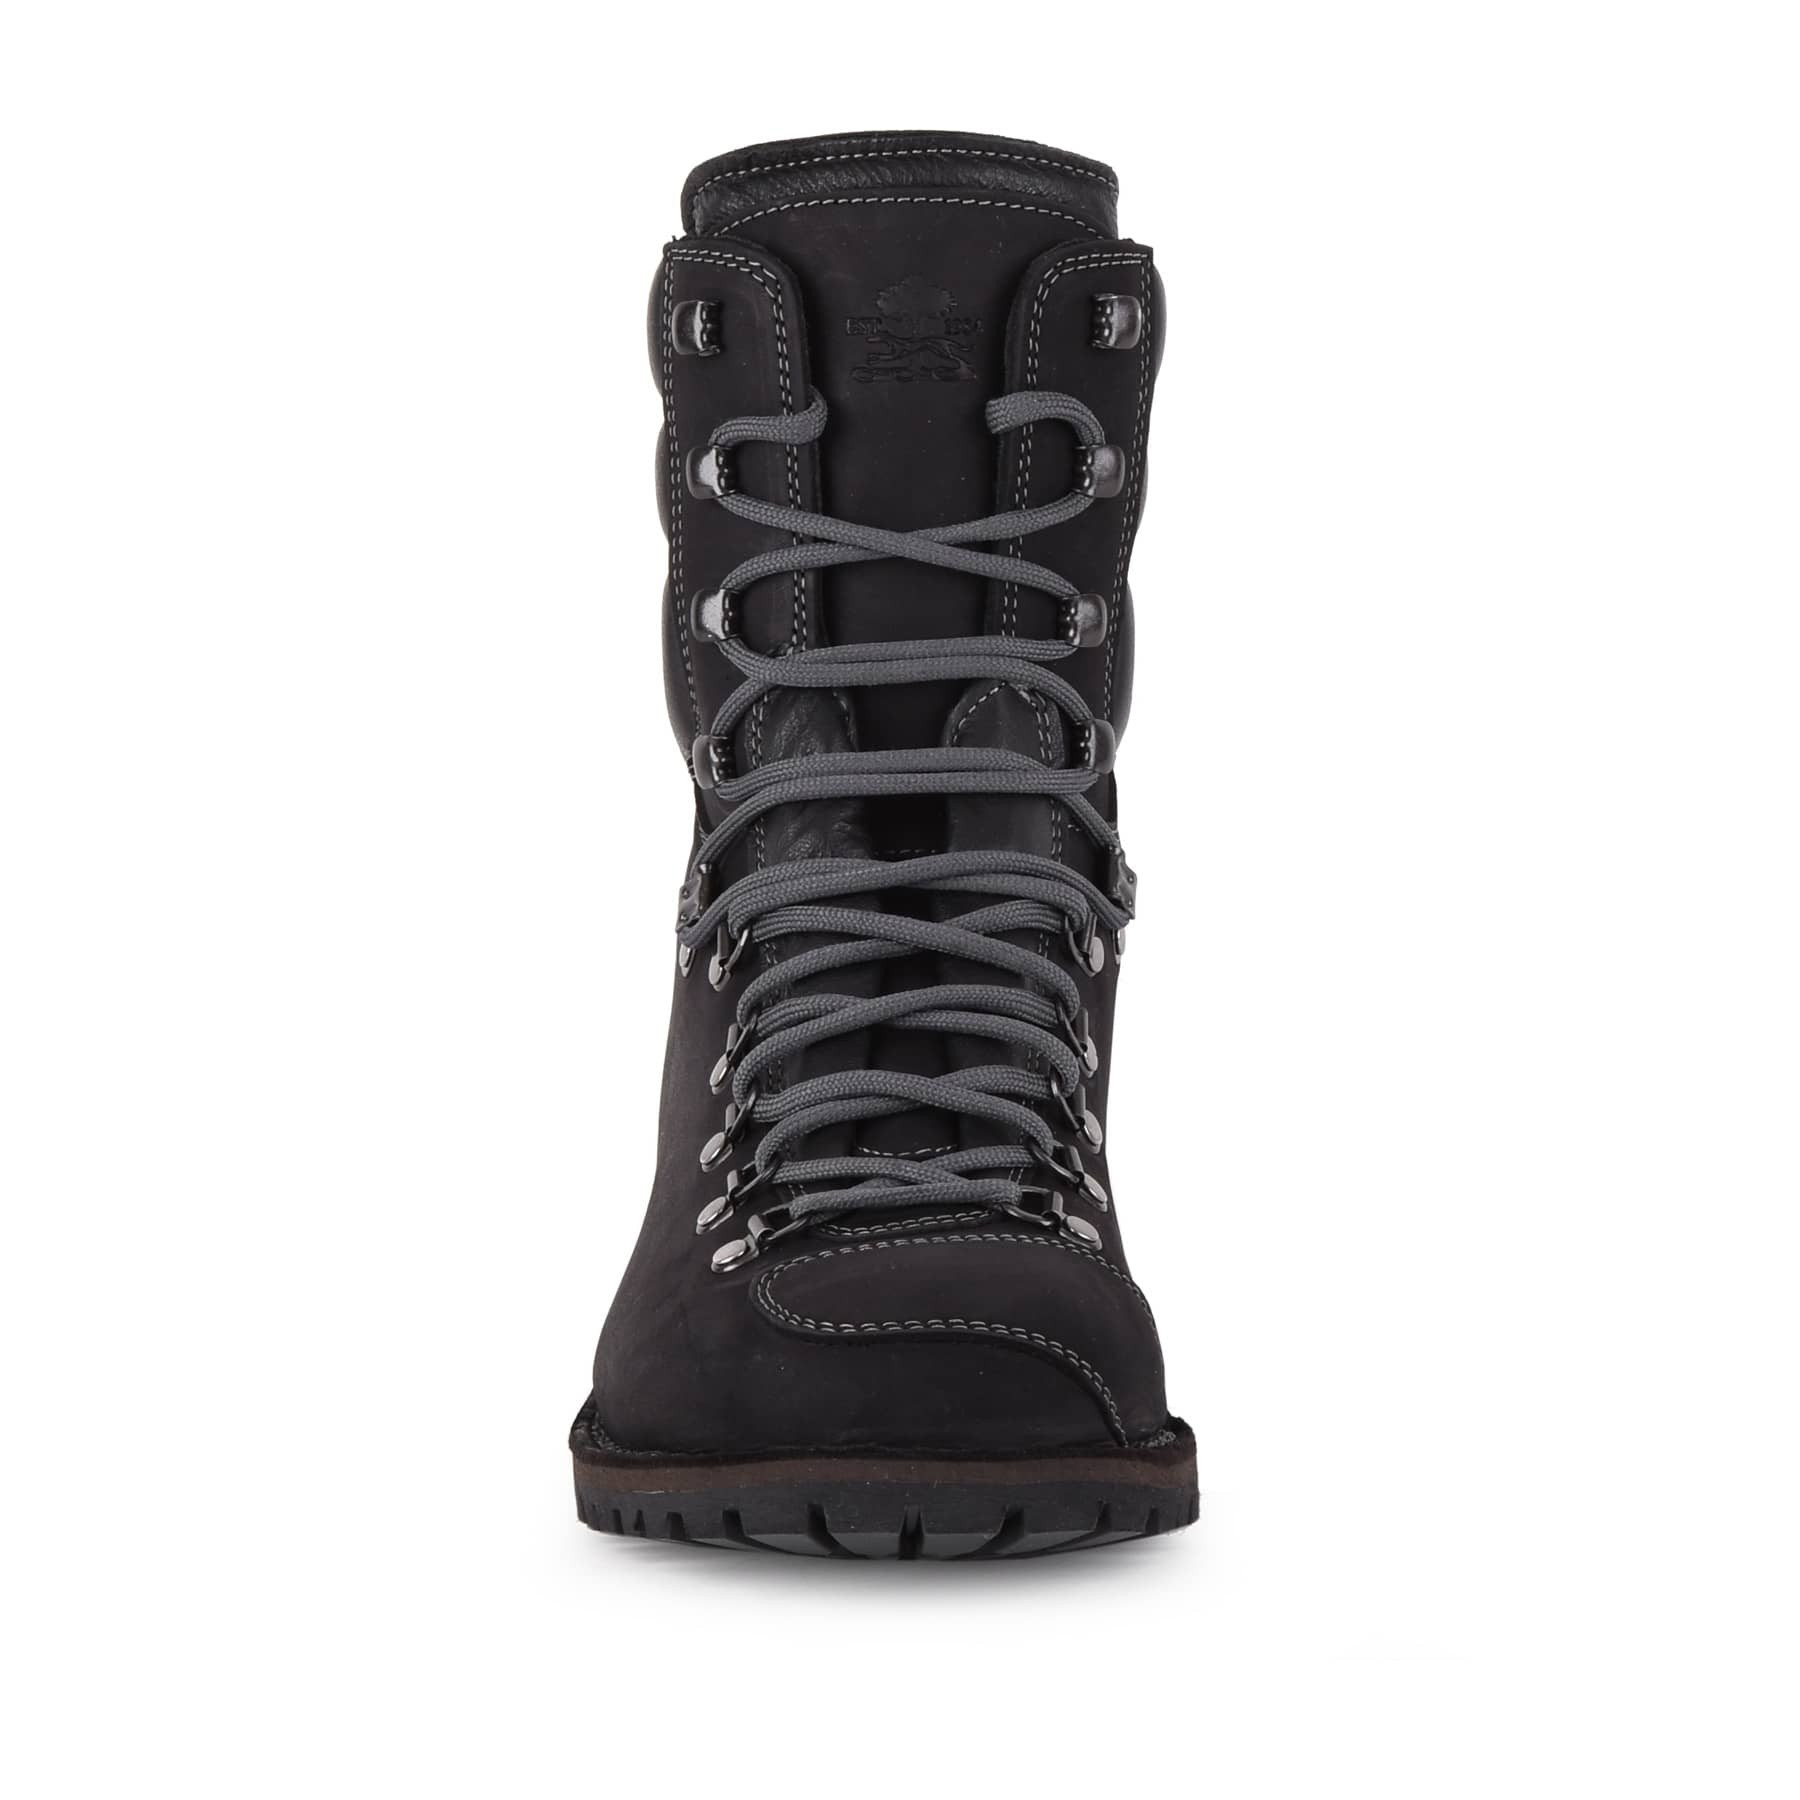 Biker Boot AdventureSE Denver Black, black gents boot, grey stitching